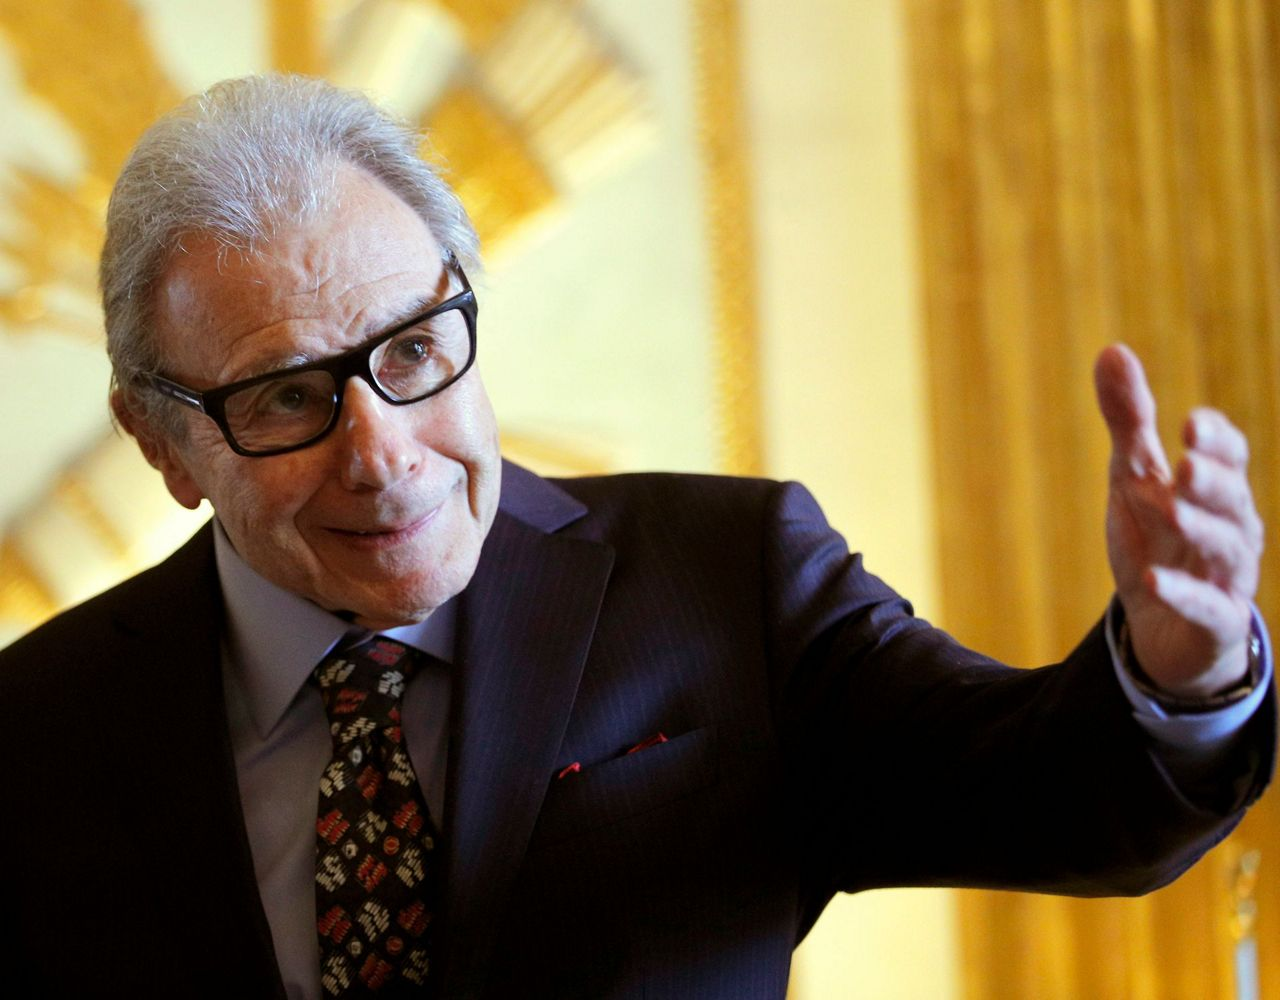 Composer Lalo Schifrin says Oscar is an 'amazing honor'